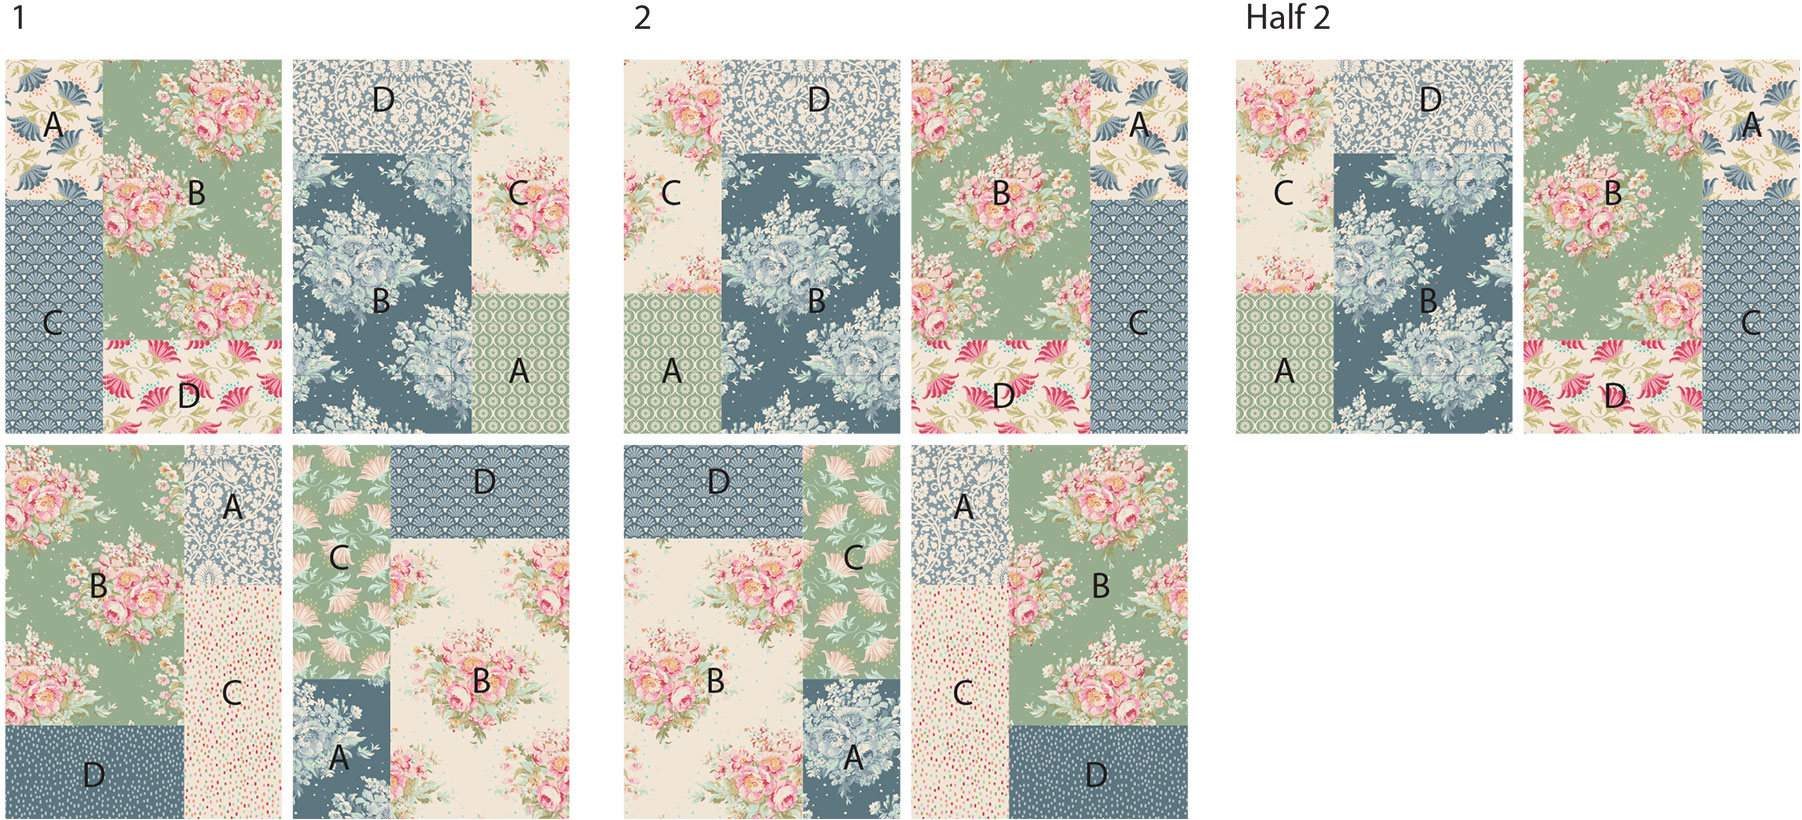 Painting-Flowers-Quilt-3